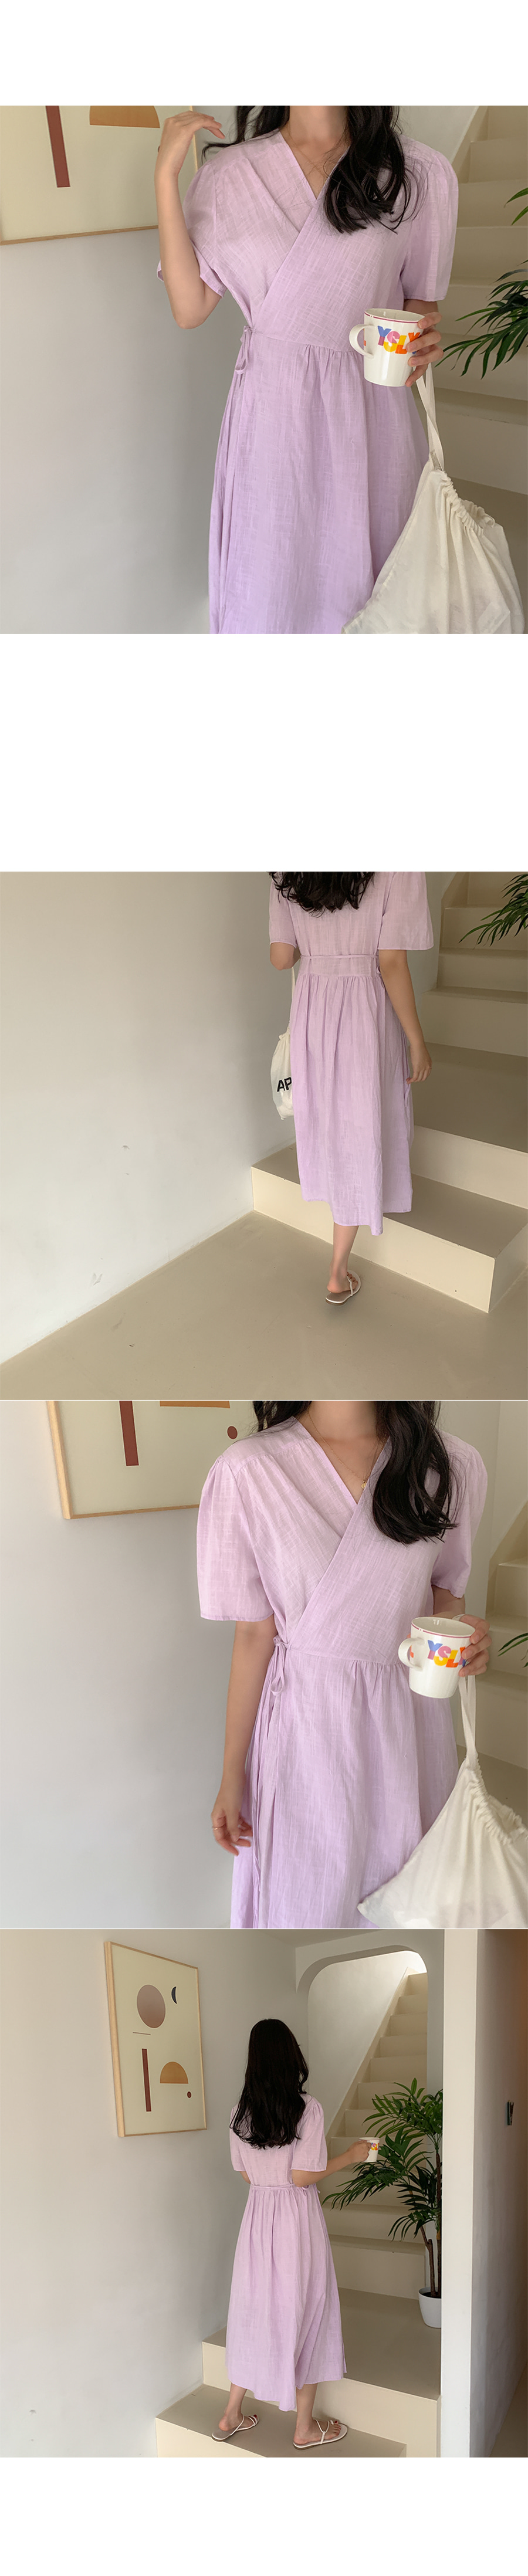 Jeev Linnen Wrap Dress